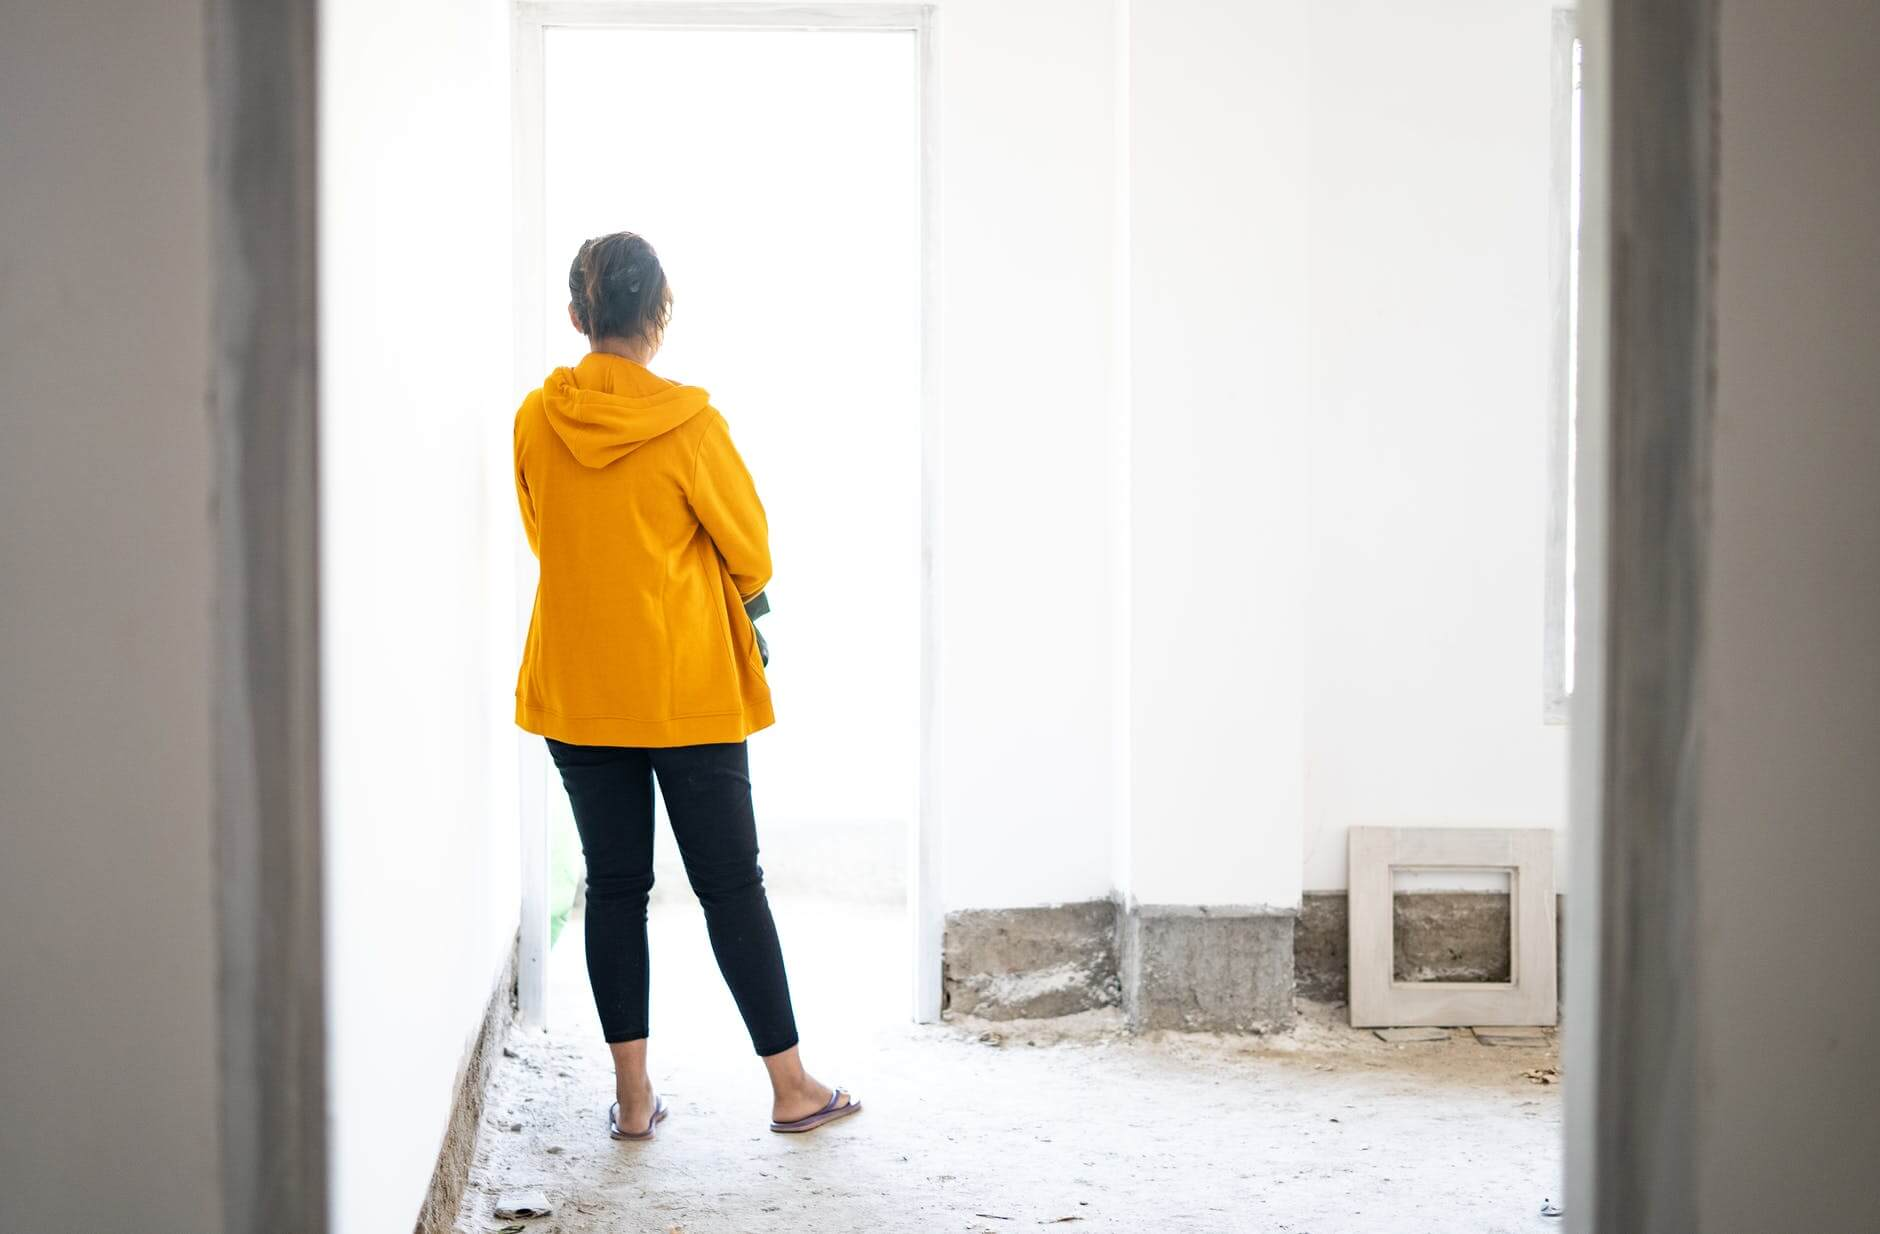 girl inside a house being constructed